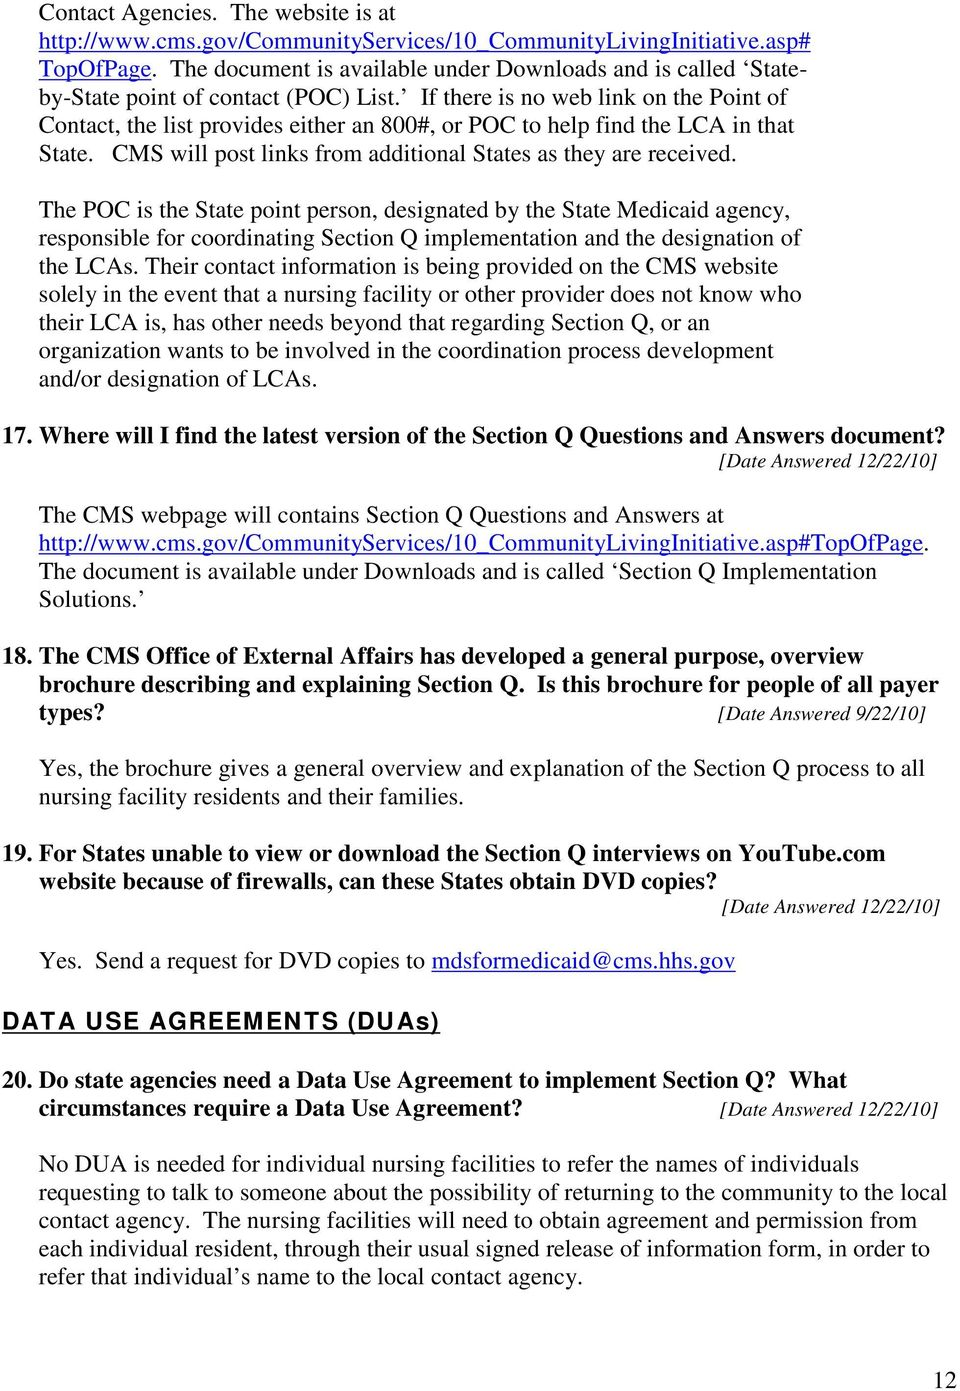 Mds 30 Section Q Implementation Questions And Answers Q As From